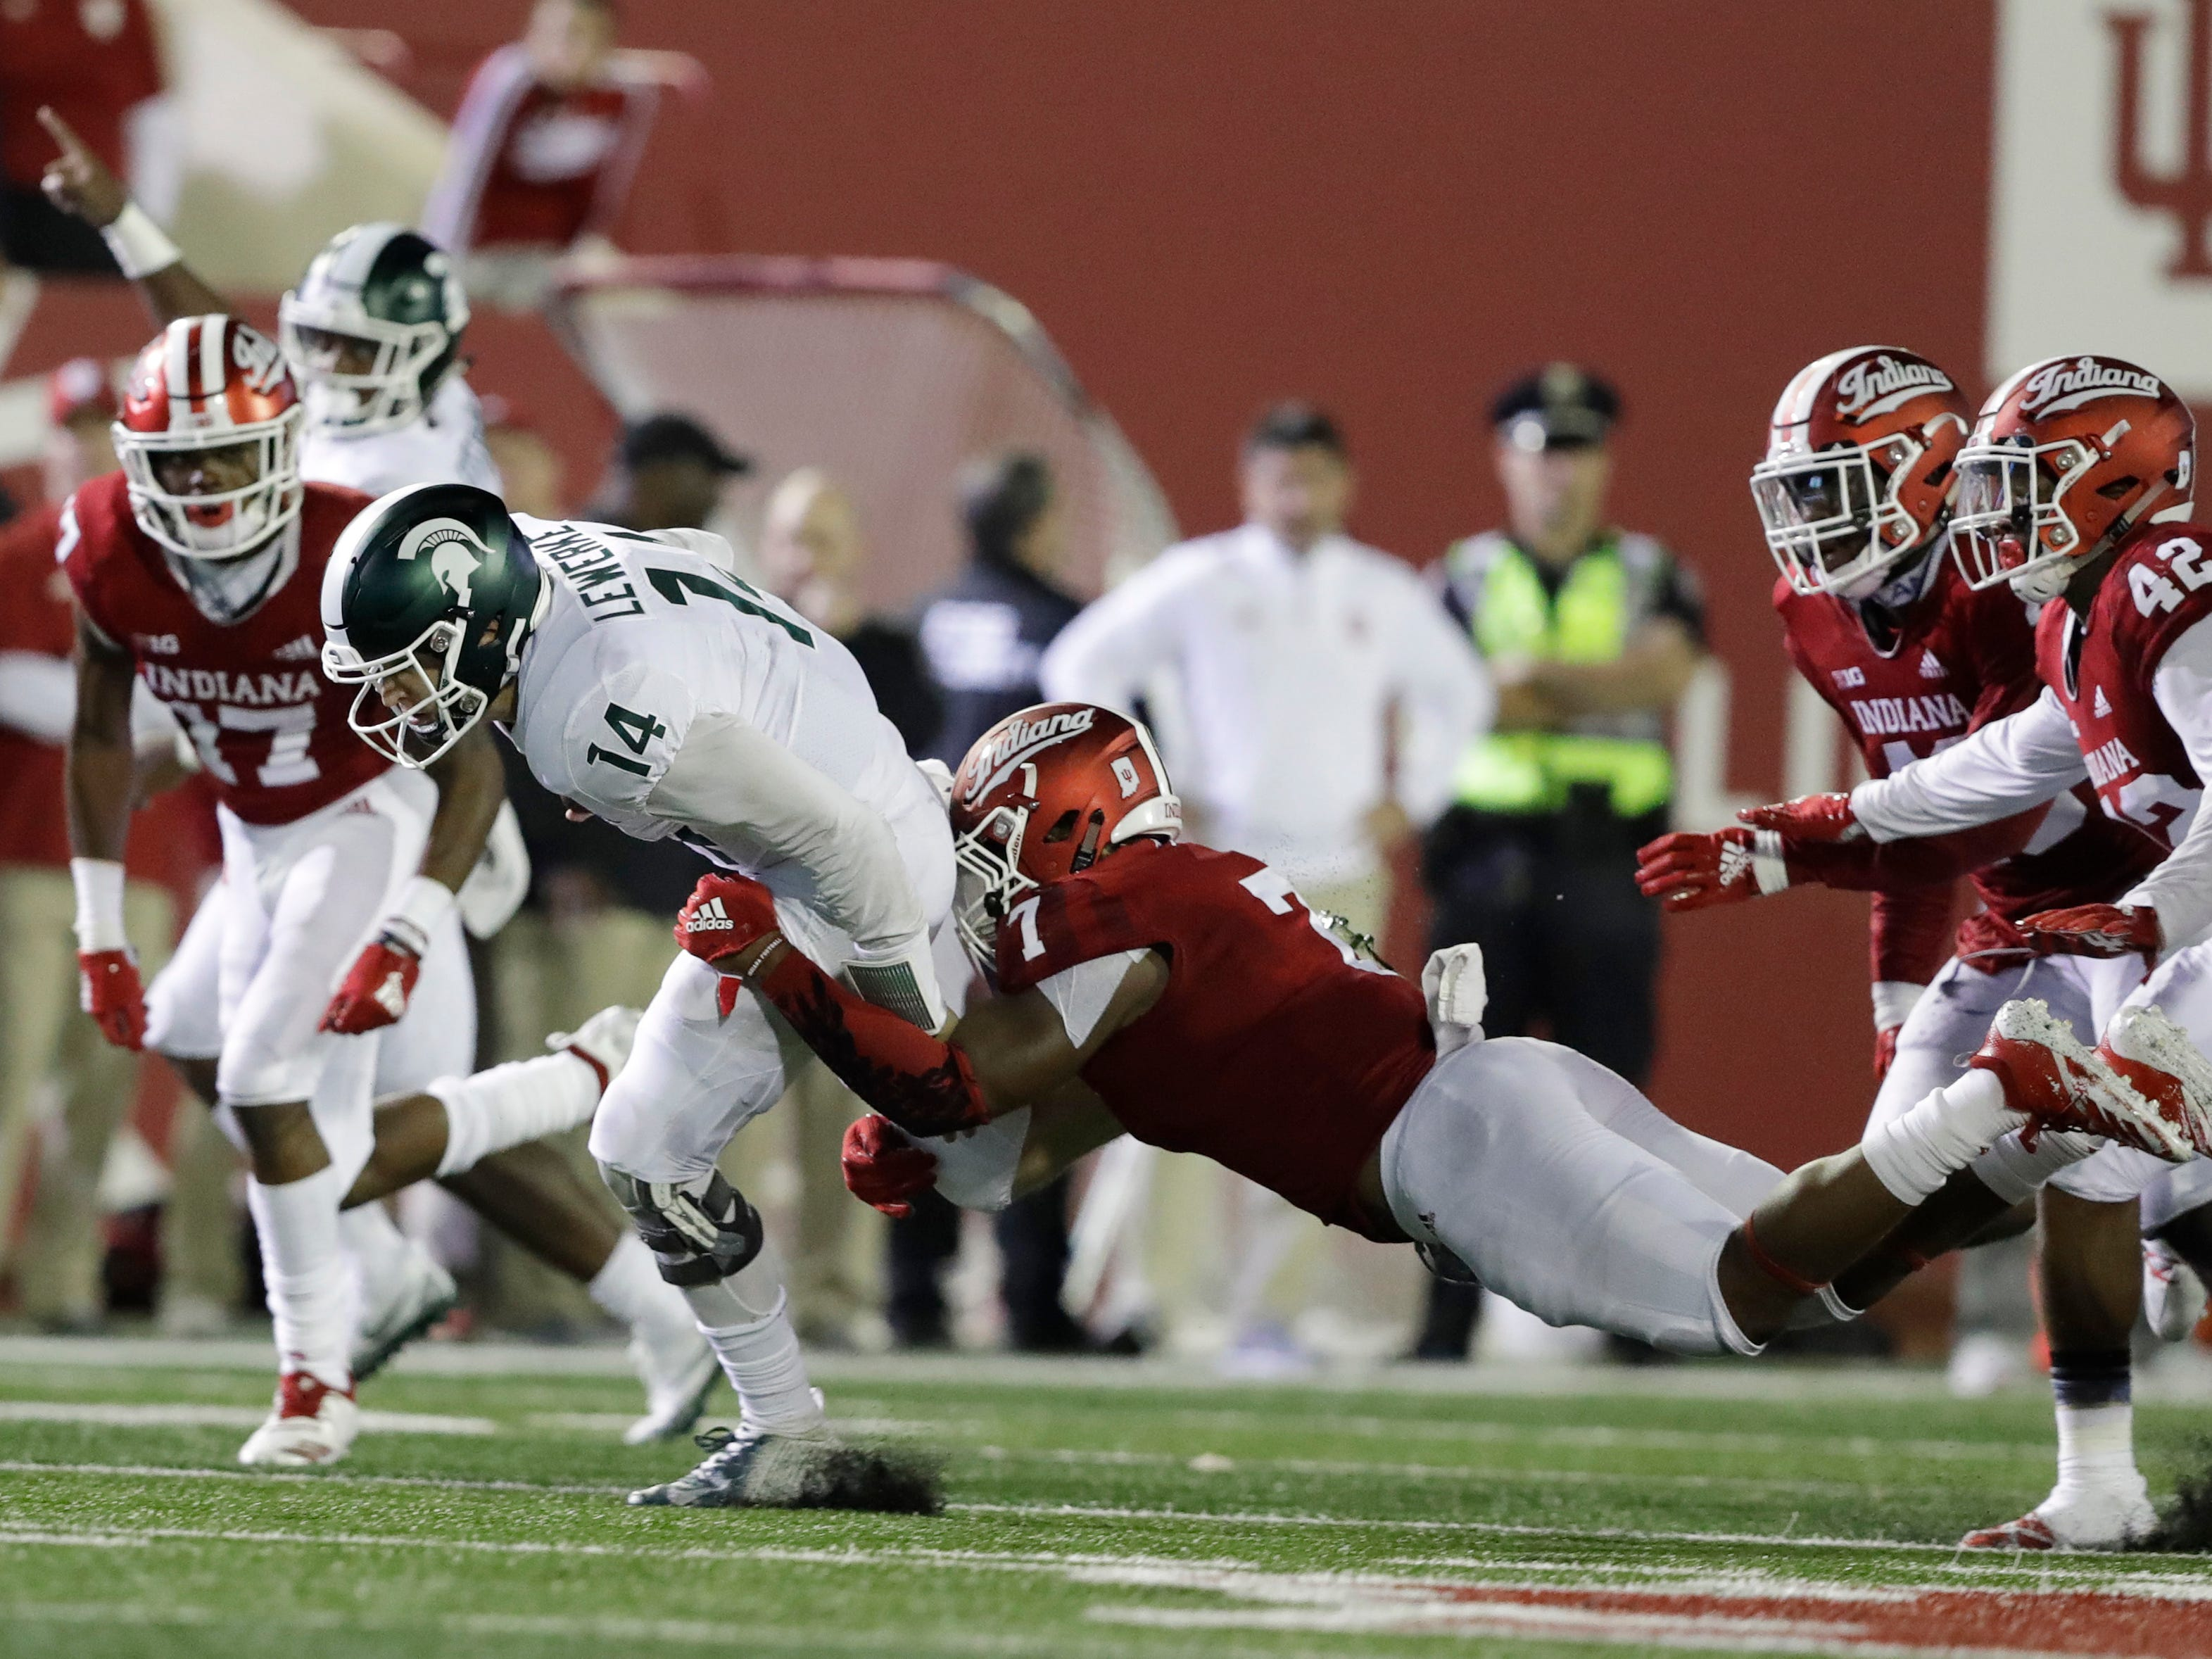 Michigan State quarterback Brian Lewerke (14) is tackled by Indiana's Reakwon Jones during the second half of an NCAA college football game, Saturday, Sept. 22, 2018, in Bloomington, Ind. Michigan State won 35-21.